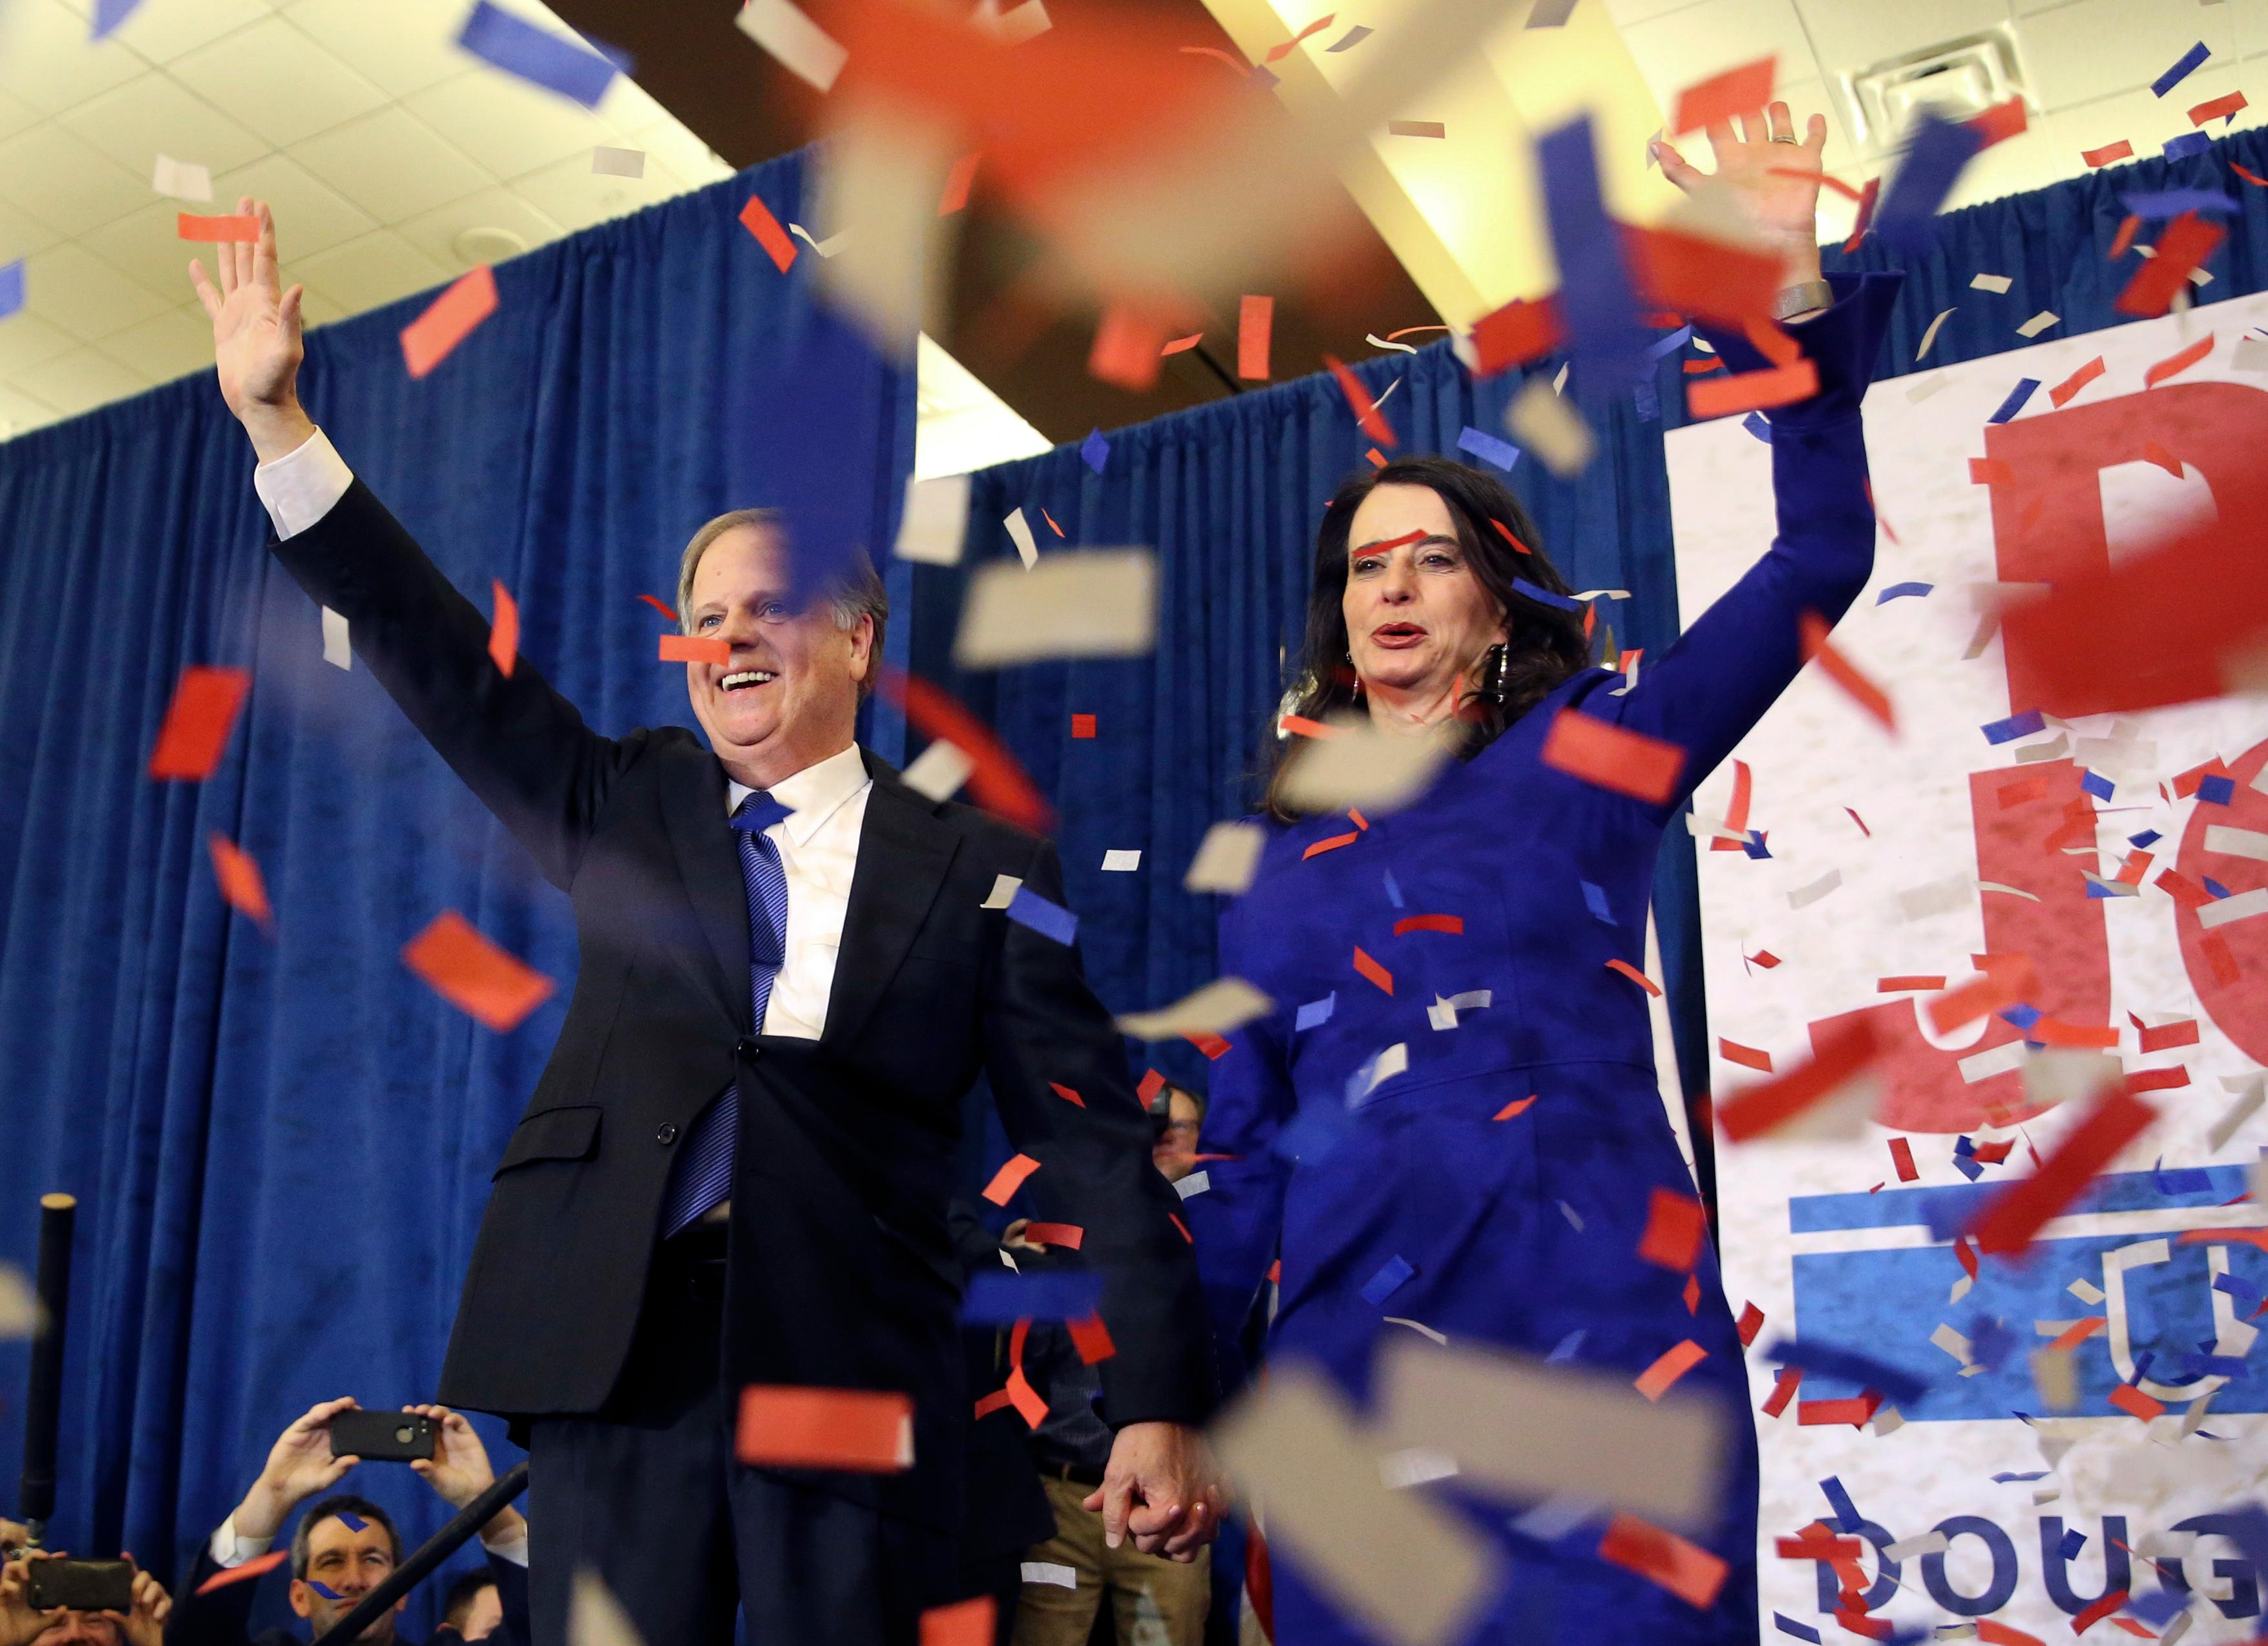 Democratic candidate for U.S. Senate Doug Jones and his wife Louise wave to supporters before speaking during an election-night watch party Tuesday, Dec. 12, 2017, in Birmingham, Ala. (AP Photo/John Bazemore)